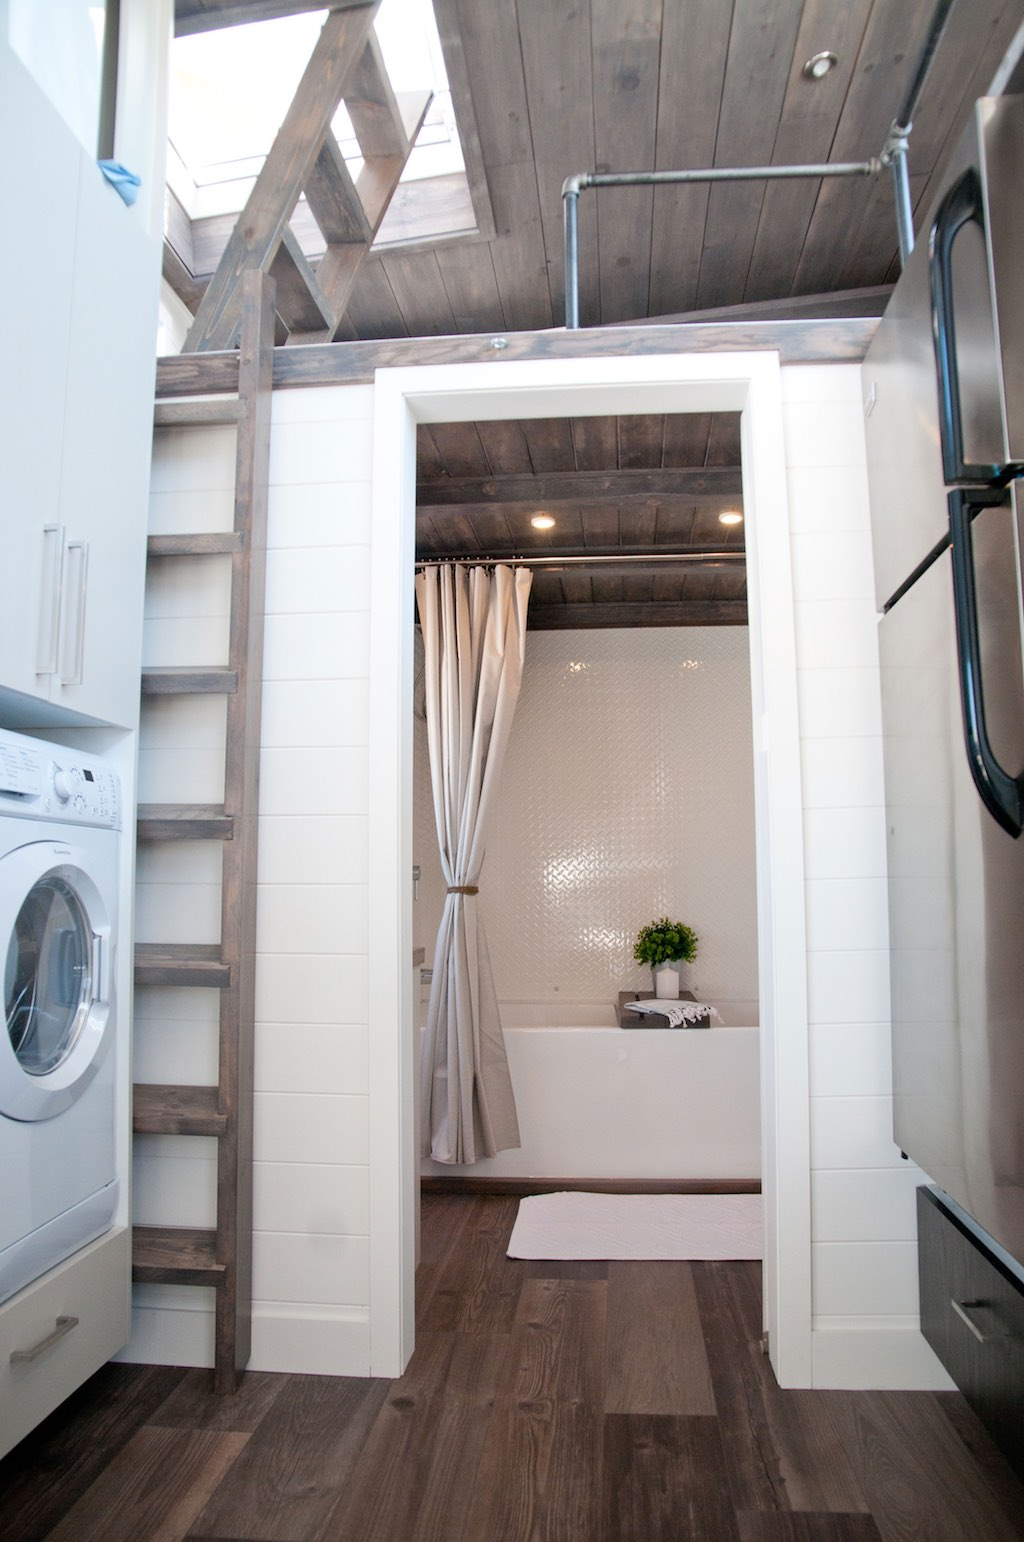 Sakura tiny house swoon for Tiny house minimalist